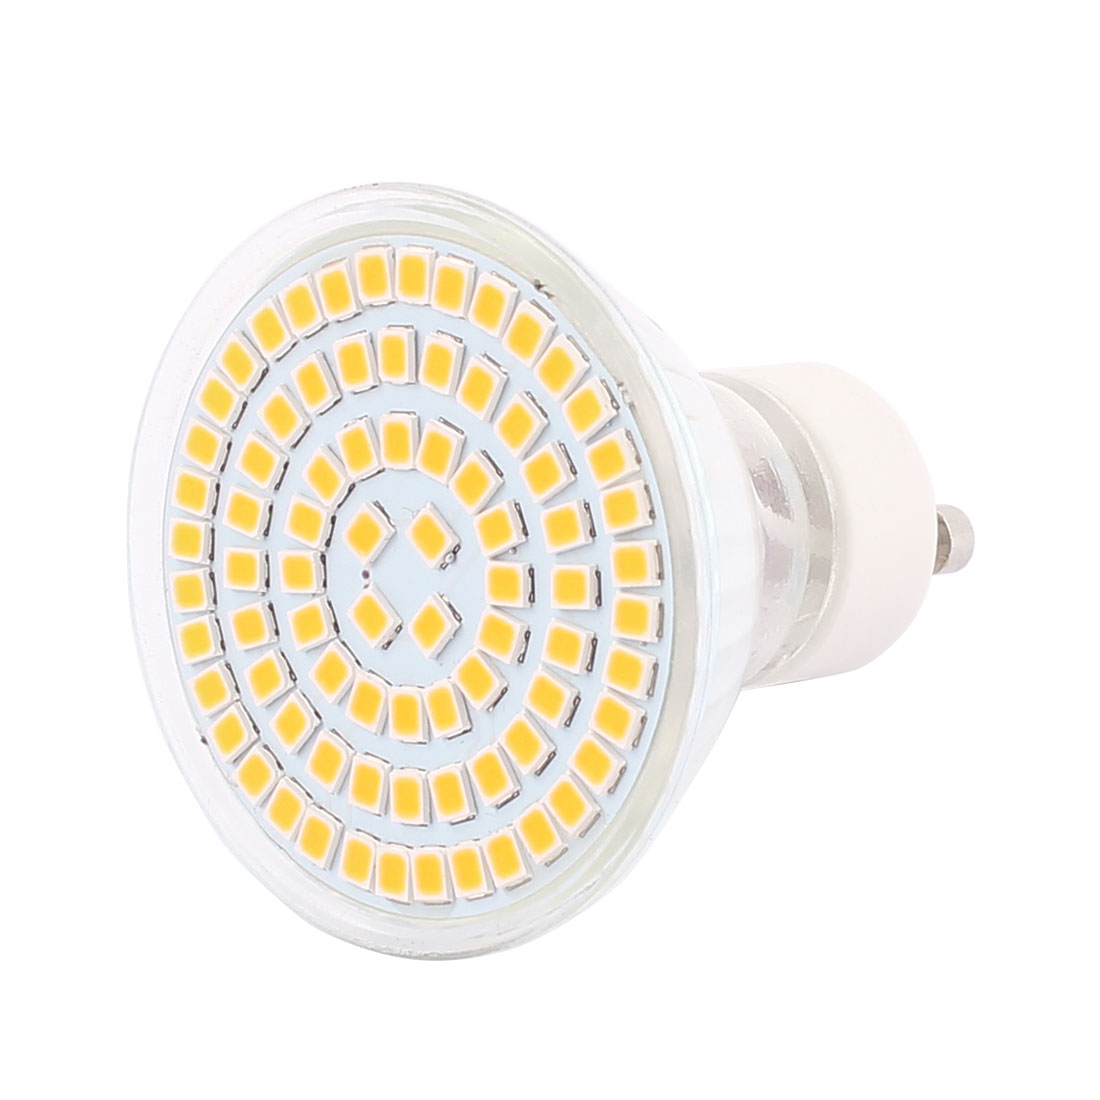 110V GU10 LED Light 8W 2835 SMD 80 LEDs Spotlight Down Lamp Bulb Lighting Warm White